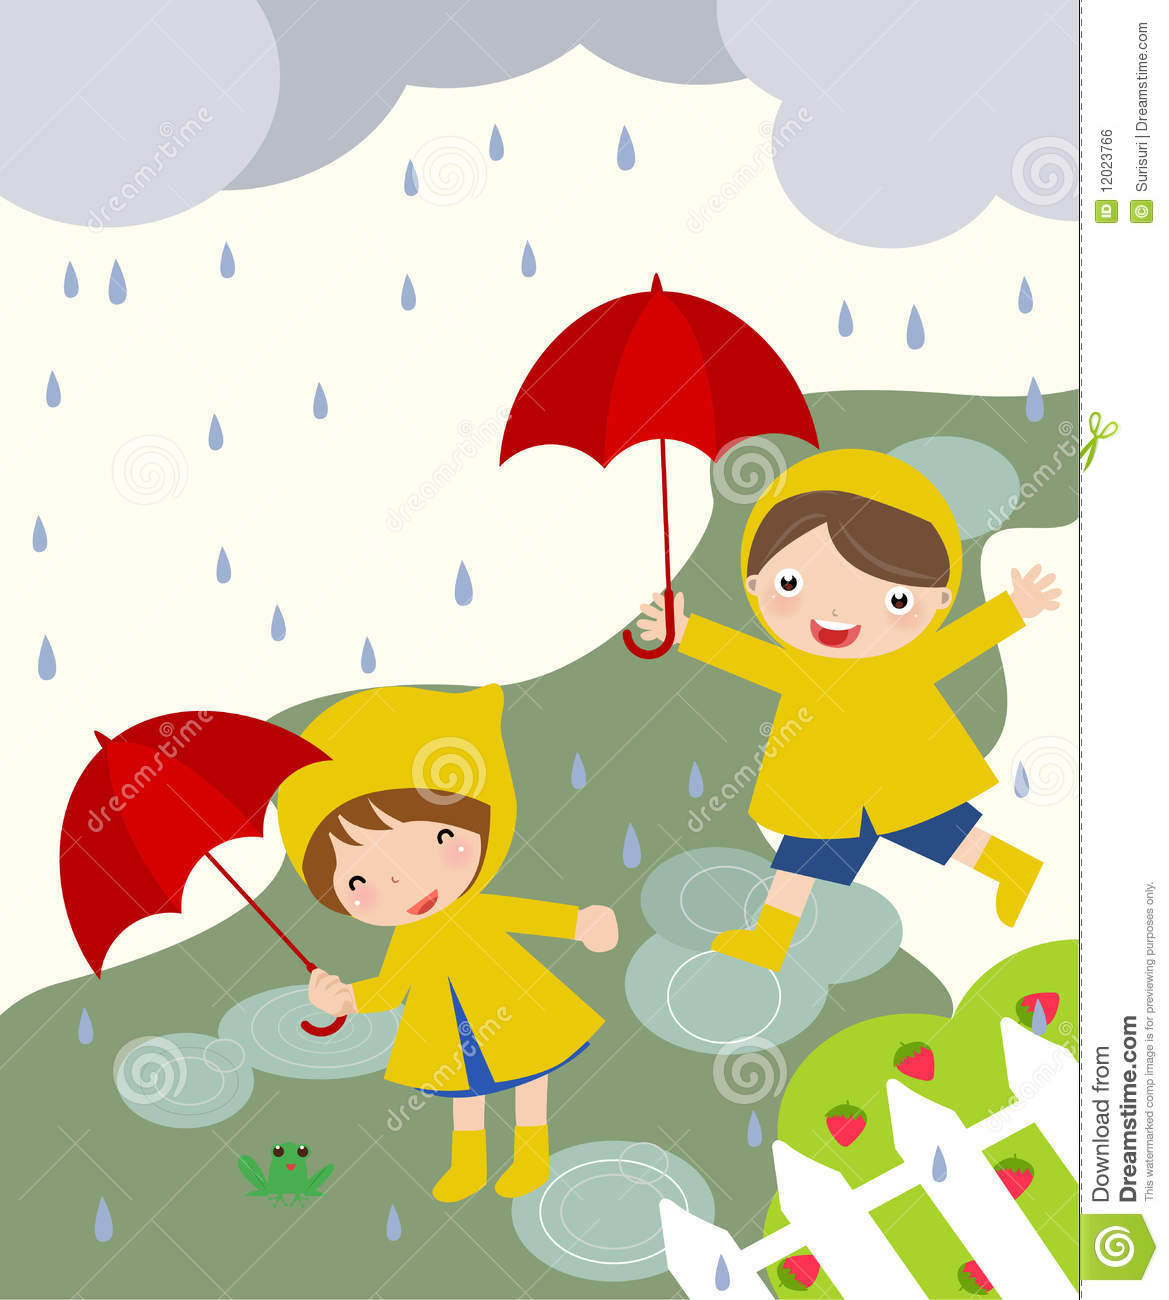 Cute Kids Playing In The Rain Royalty Free Stock Image ...